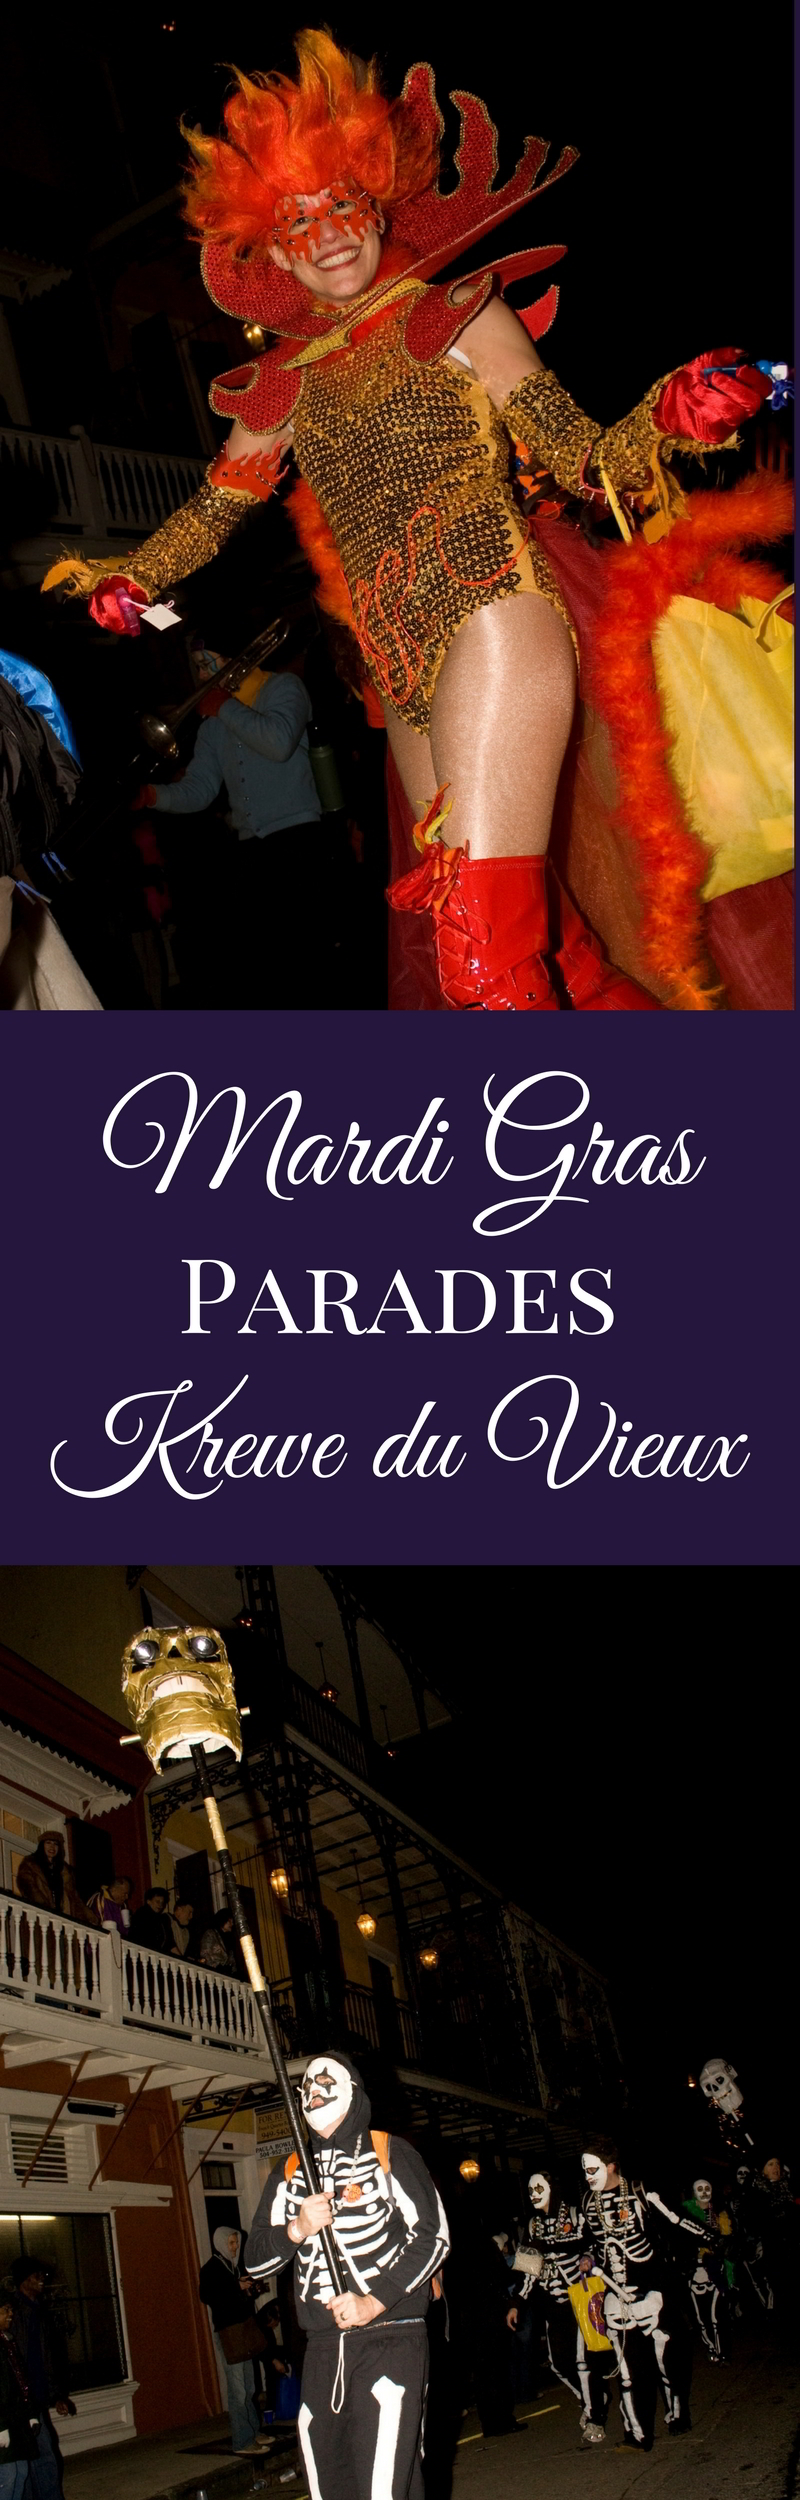 Krewe du Vieux is the traditional kickoff of the Mardi Gras parade season in New Orleans. The parade route starts in the Marigny at Franklin and Royal Street and winds through the French Quarter and Central Business District. (Photos courtesy Flickr user Derek Bridges)